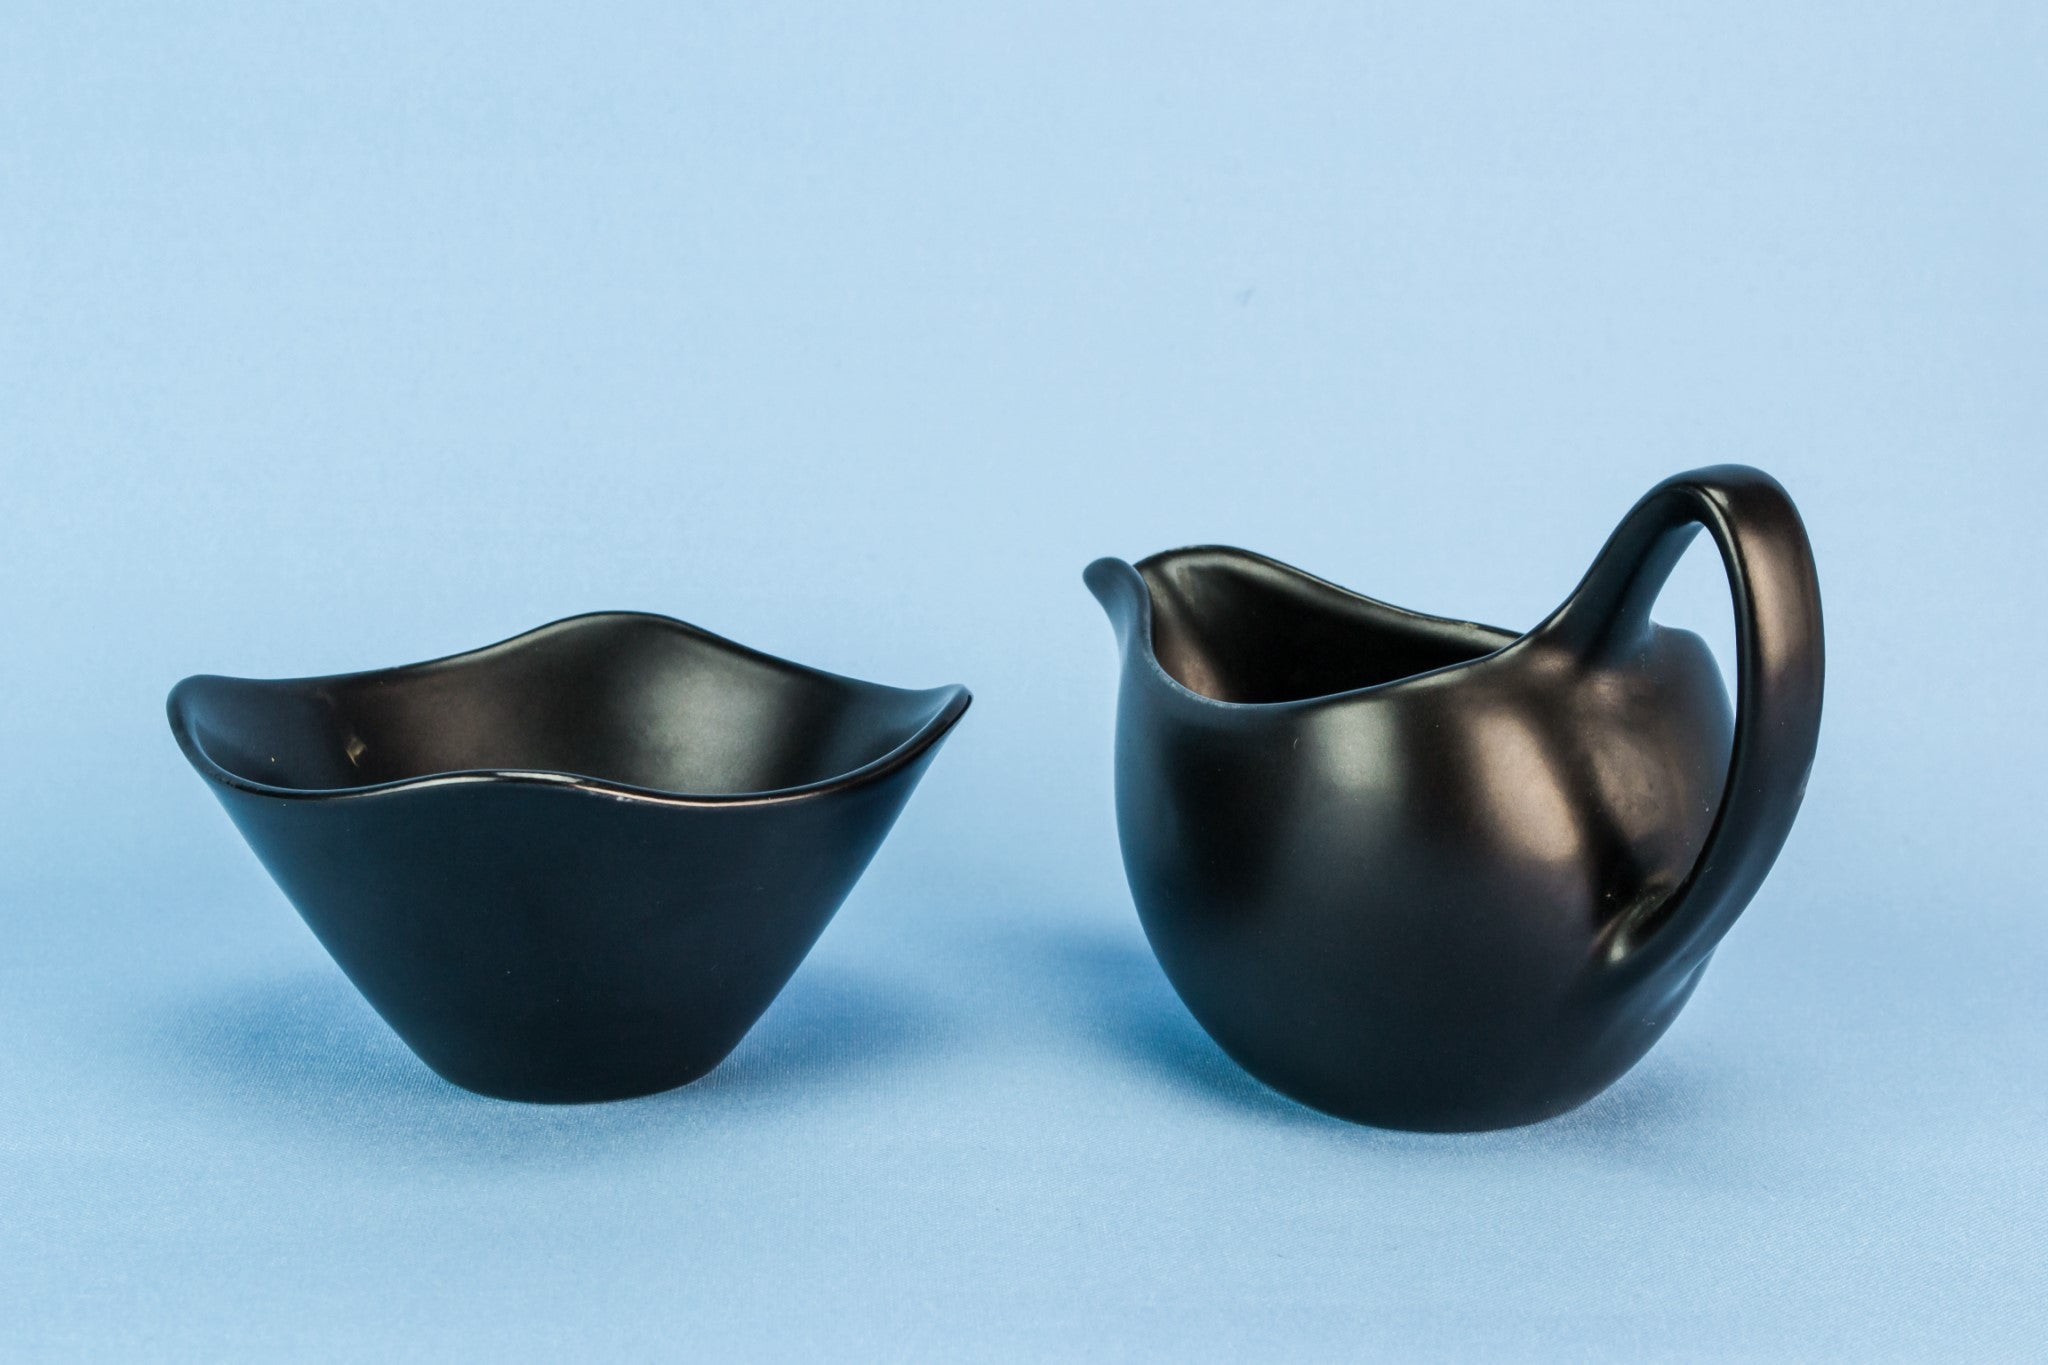 Black creamer and sugar bowl